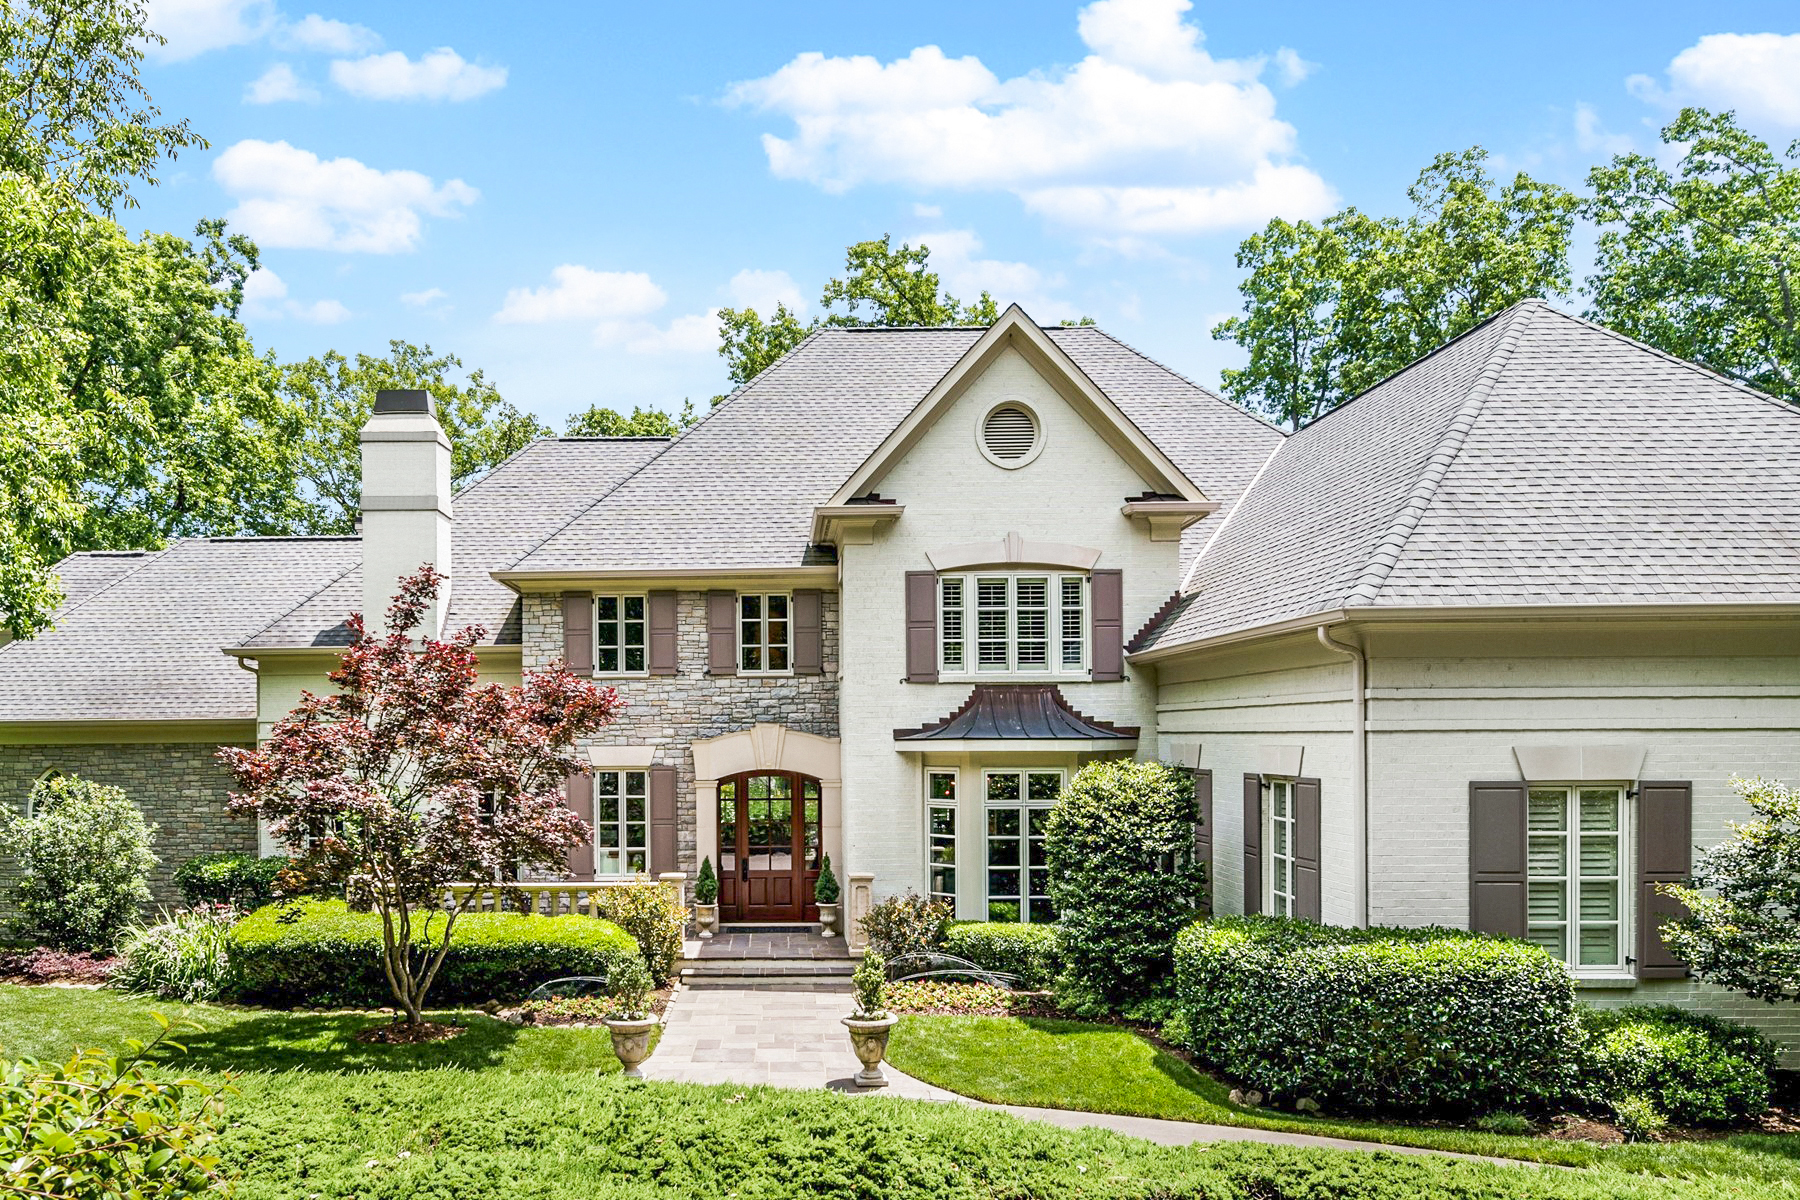 Single Family Homes for Sale at Carolina Masterpiece in Governors Club 22103 Holden Chapel Hill, North Carolina 27517 United States